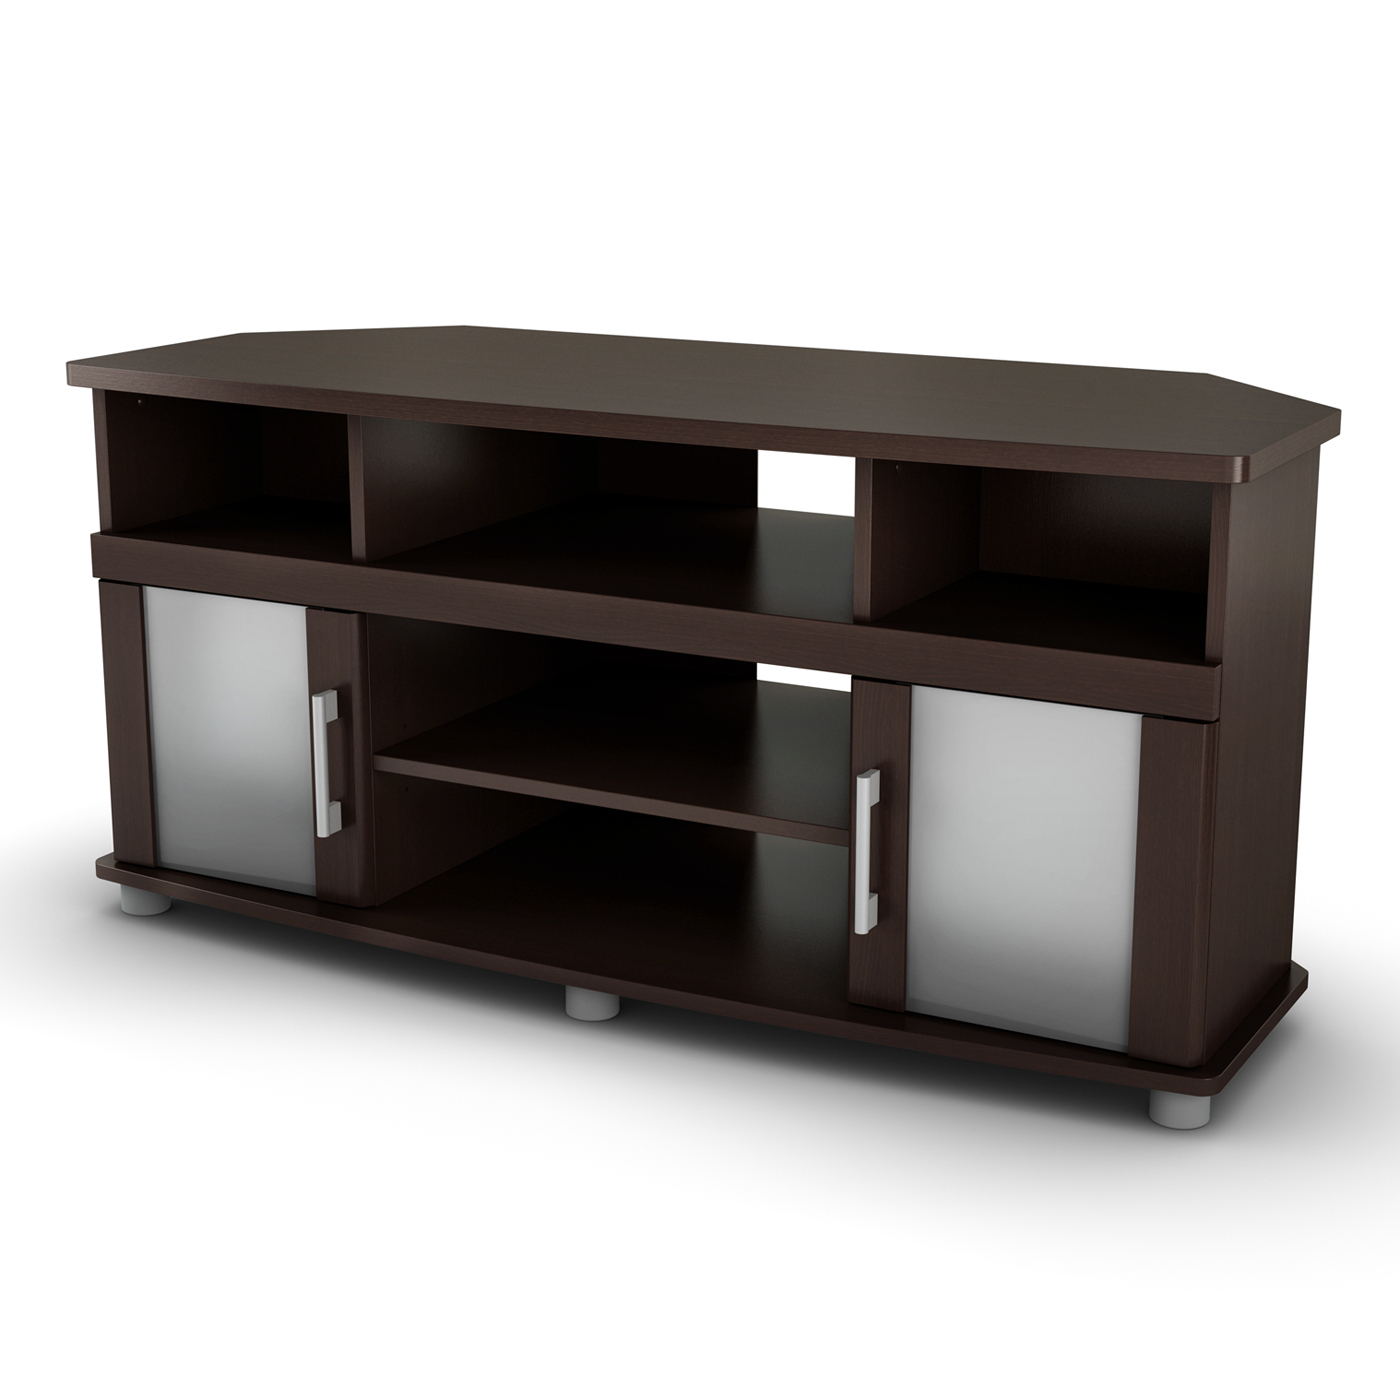 Modern Tv Stands | Lowe's Canada with Oxford 70 Inch Tv Stands (Image 17 of 30)